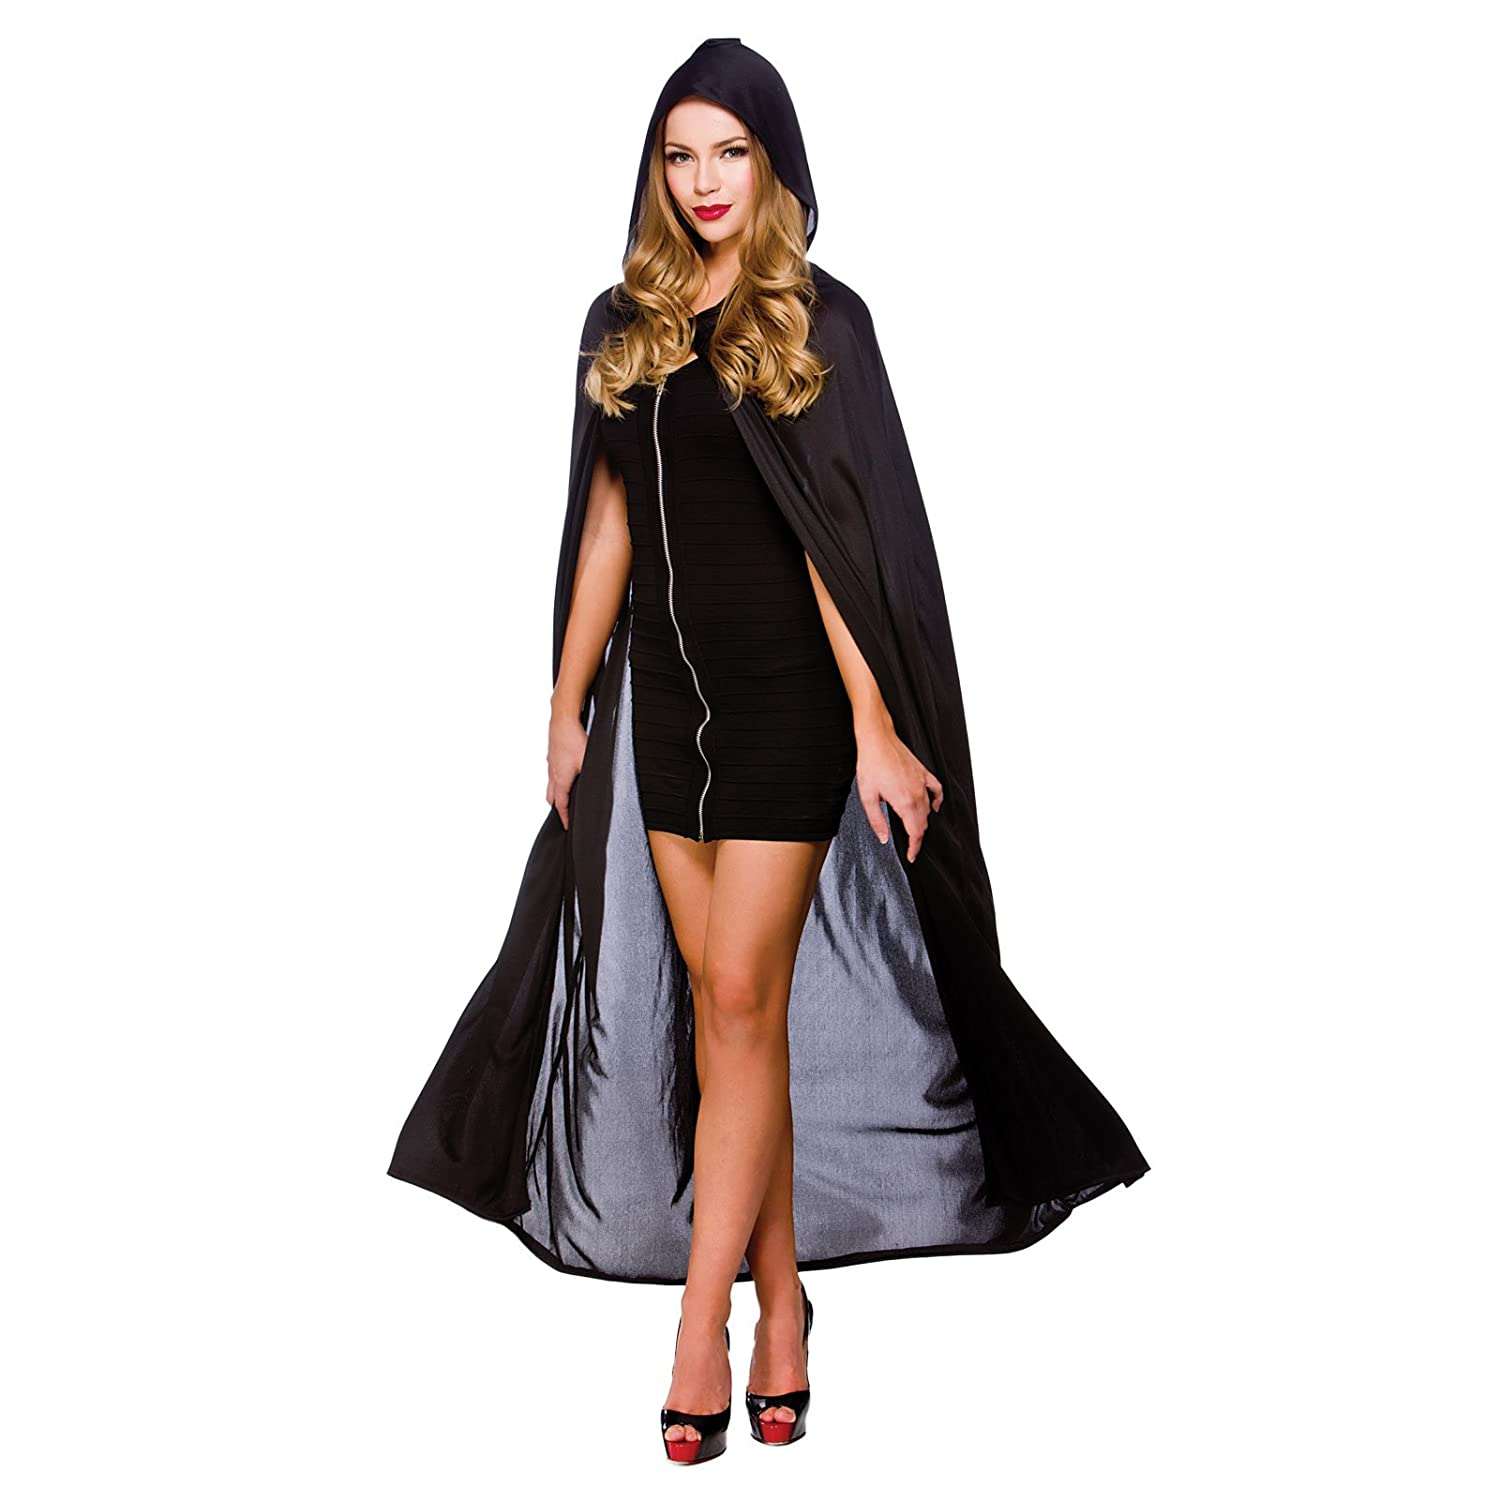 cape w hood black 52 132cm womens vampire costumes for adult ladies dracula halloween trick treat party fancy dress up outfits amazoncouk toys games - Halloween Dracula Costumes